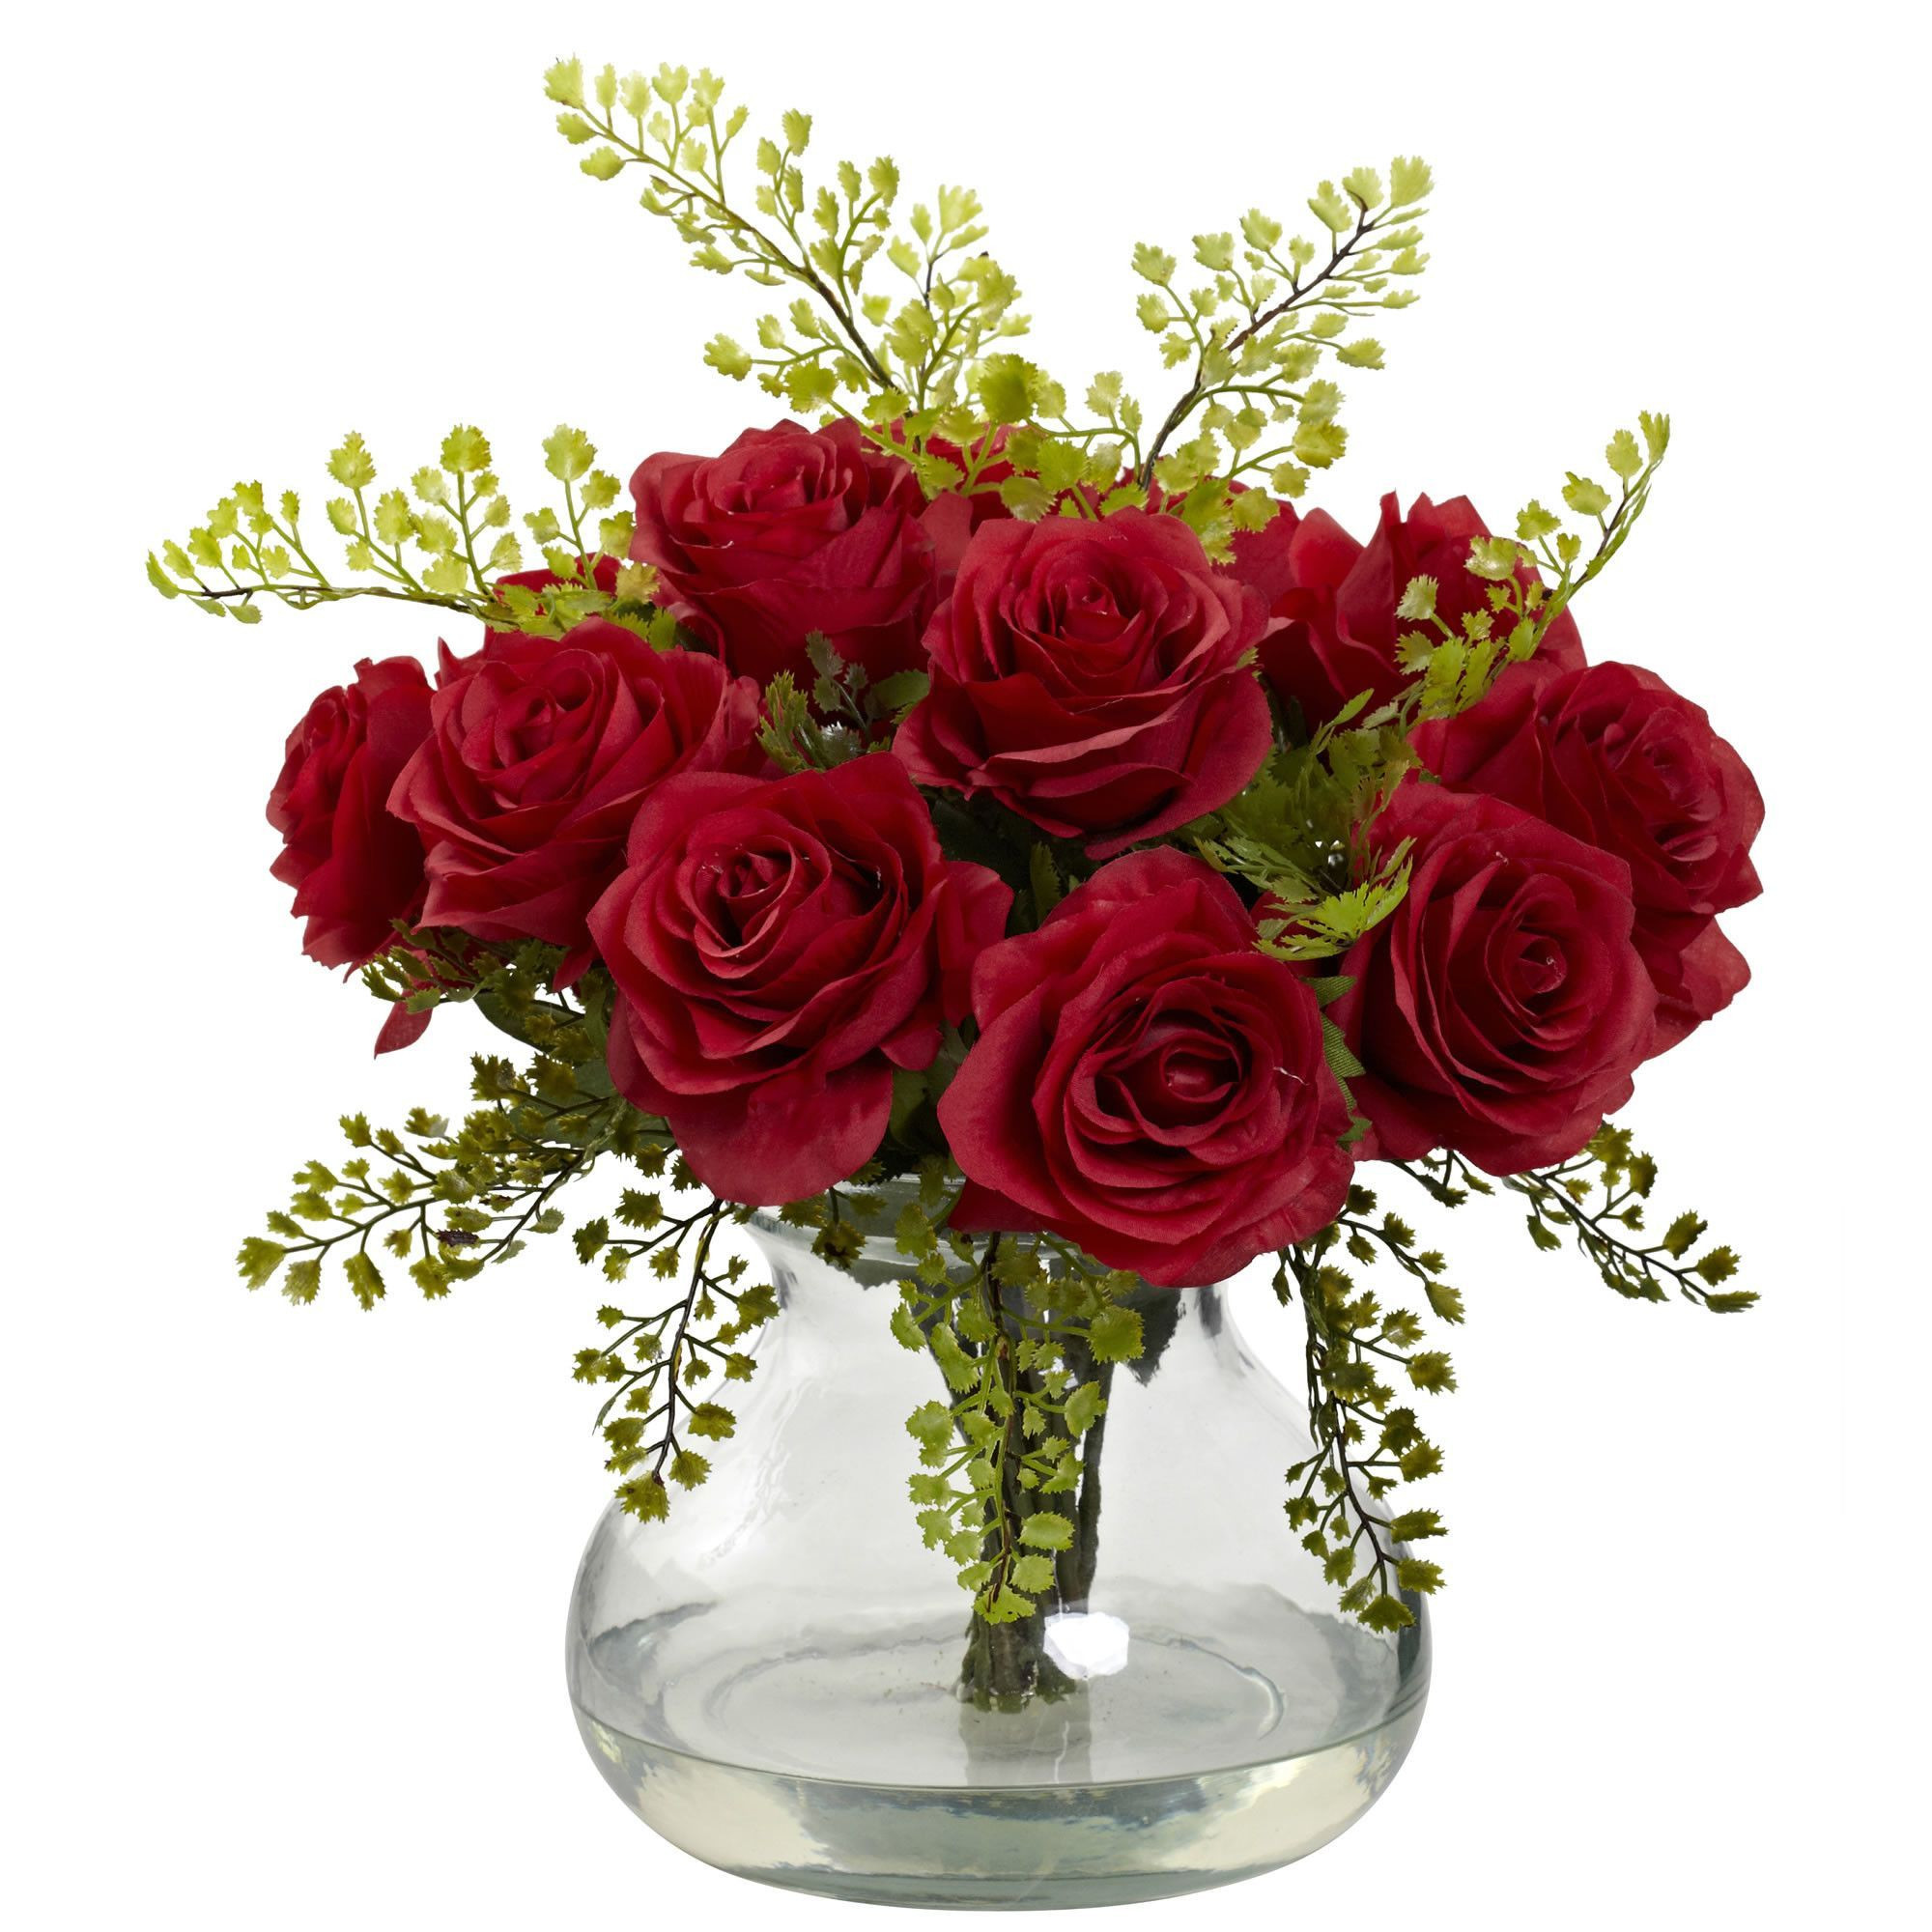 artificial roses in vase of rose and maiden hair floral arrangement with vase valentines with rose and maiden hair floral arrangement with vase